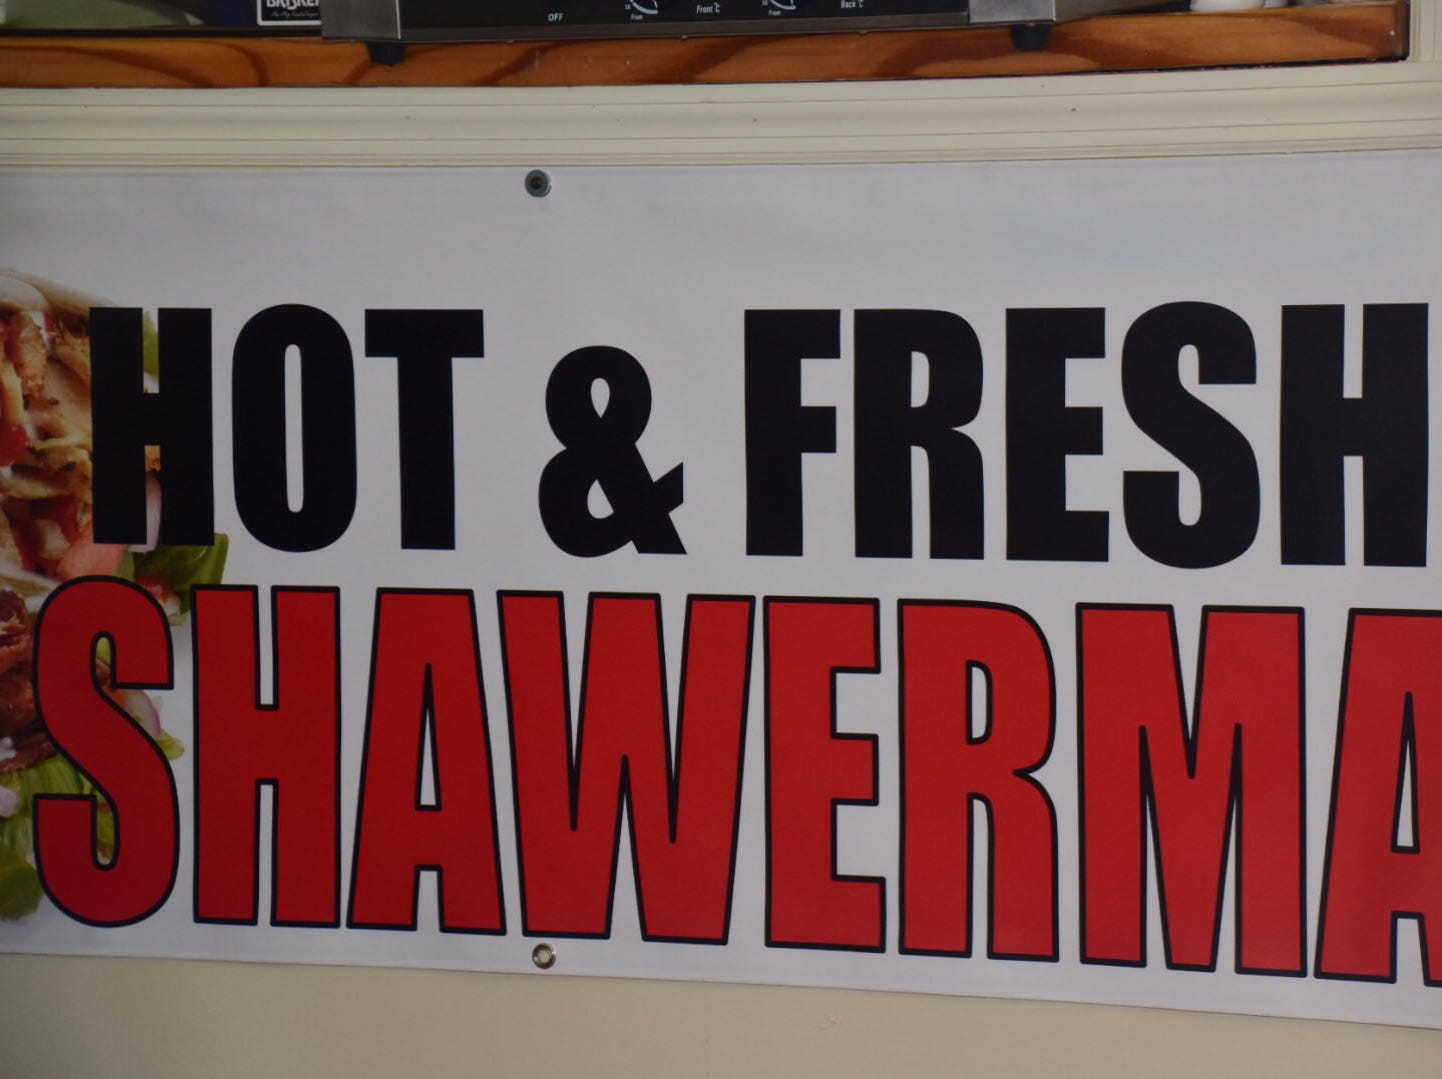 Shawarma is spiced rotisserie chicken or beef shredded and served up over lettuce. It's popular as a salad or wrapped sandwich at Kib Kab Deli Wednesday, Dec. 2.